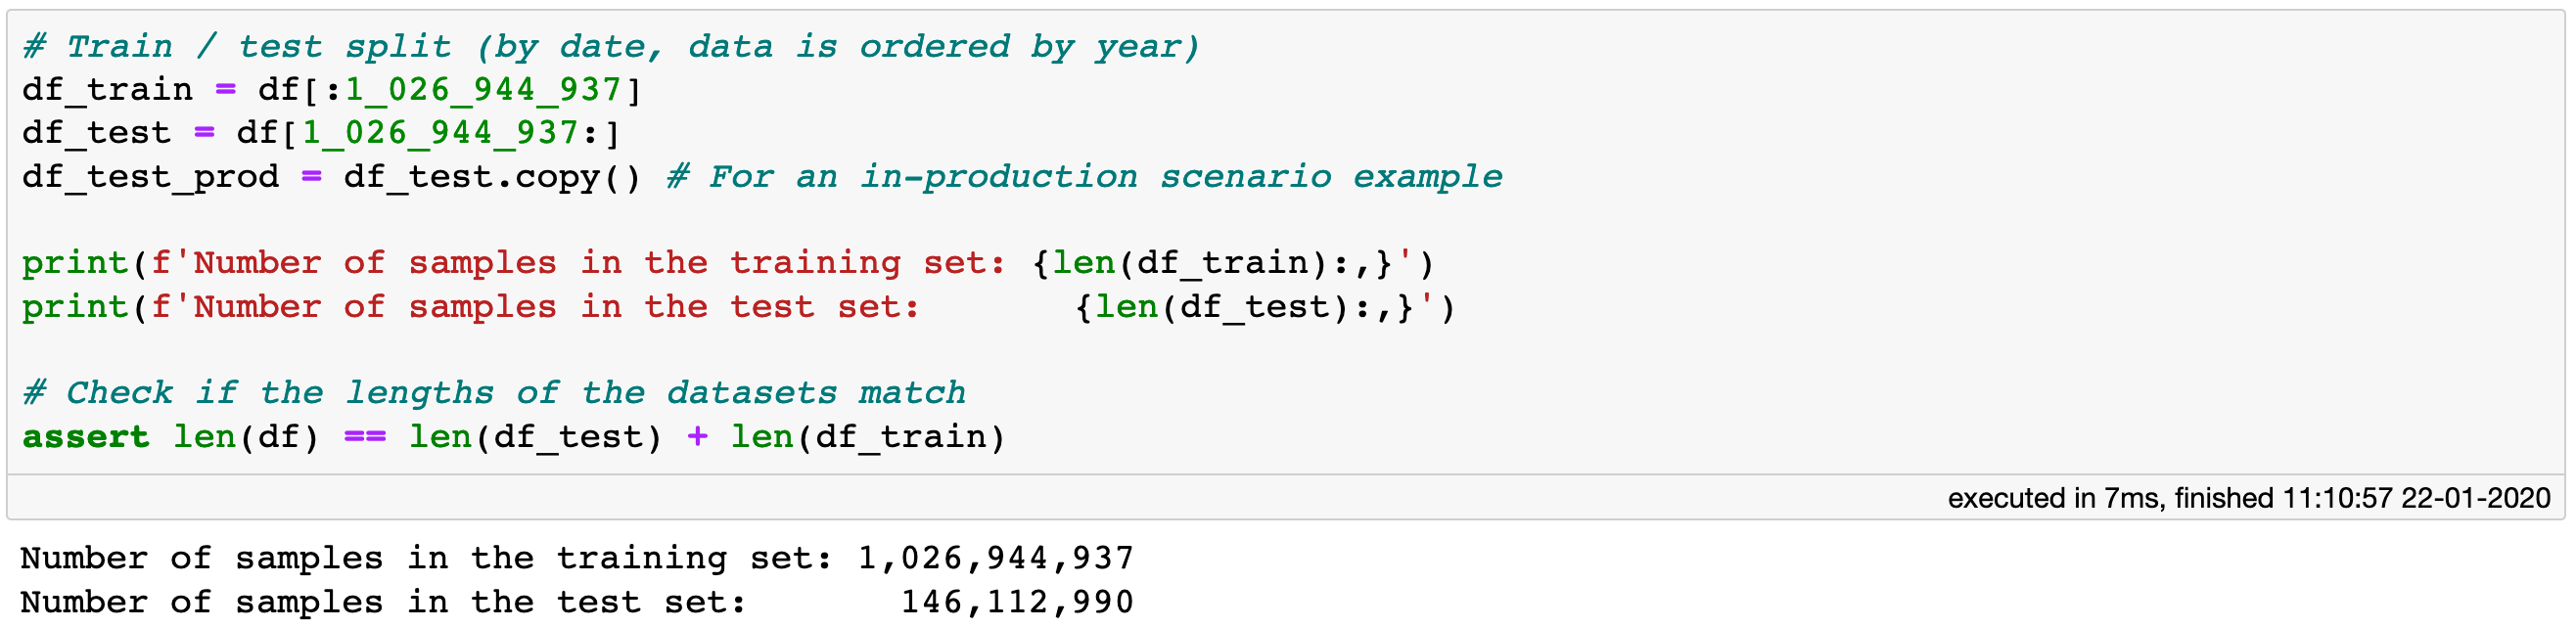 Create train and test sets. Slicing of a Vaex DataFrame does not copy the data, but only creates a reference.